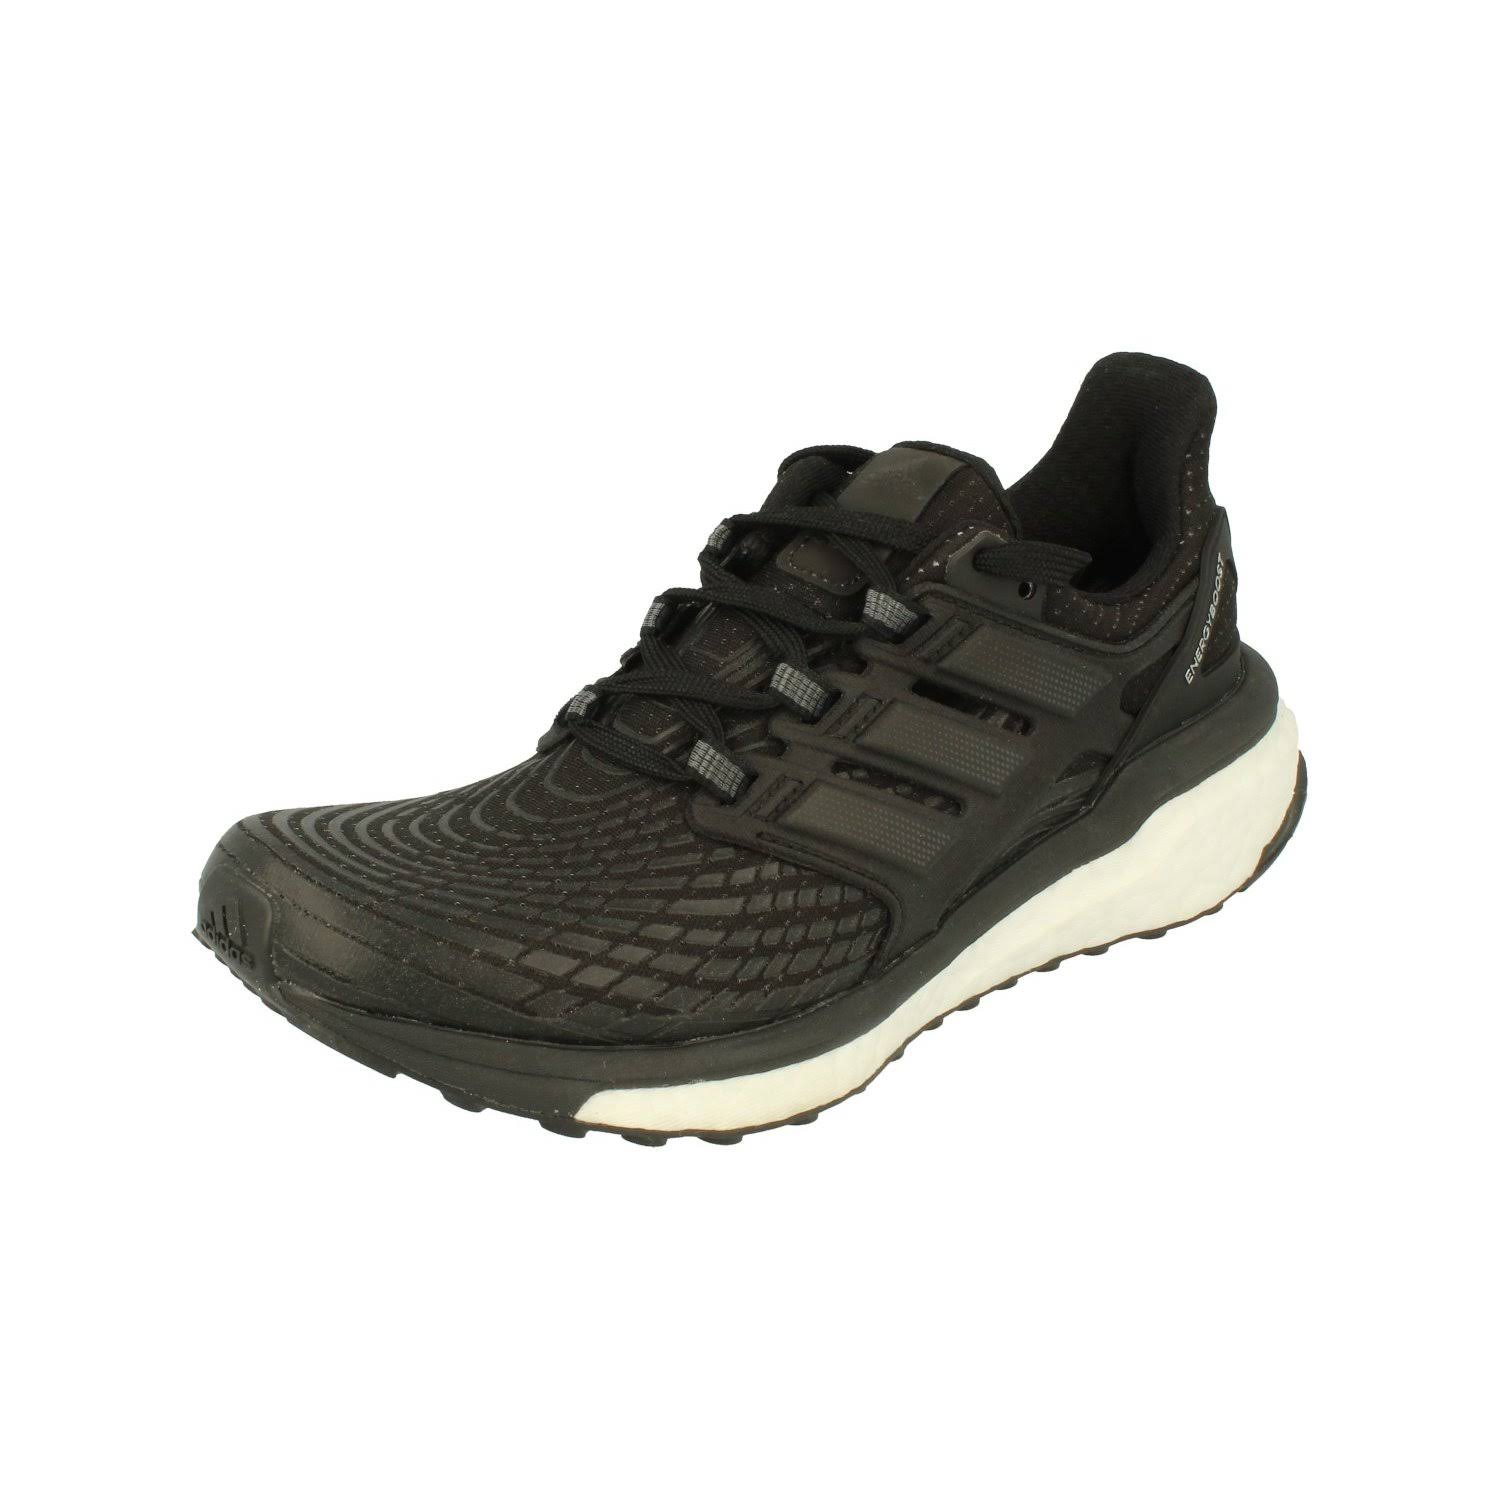 (4 (Adults')) Adidas Energy Boost Womens Running Trainers Sneakers Shoes